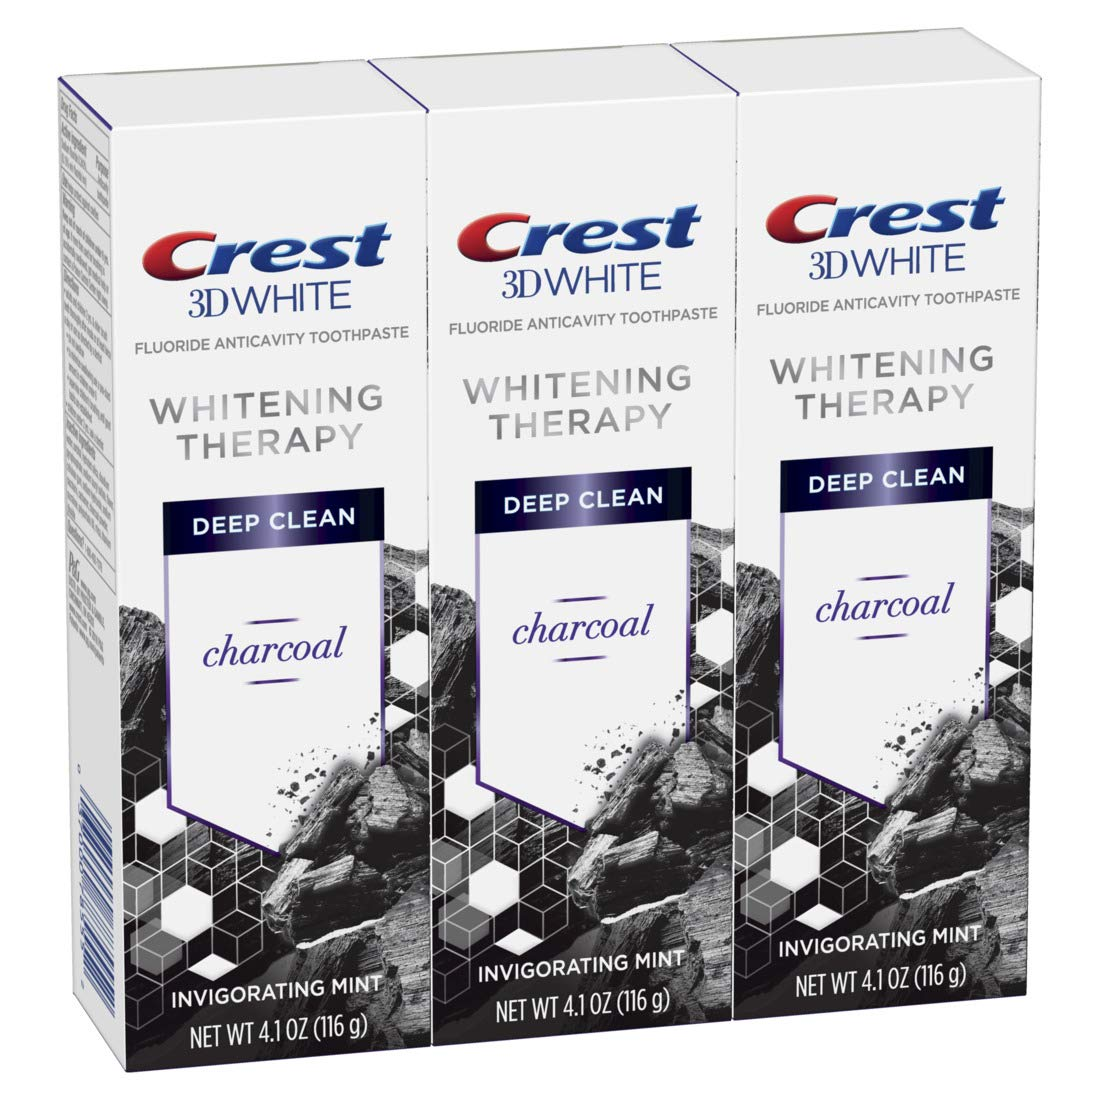 Crest Charcoal 3D White Toothpaste, Whitening Therapy Deep Clean with Fluoride, Invigorating Mint, 4.1 Ounce, Pack of 3 : Beauty